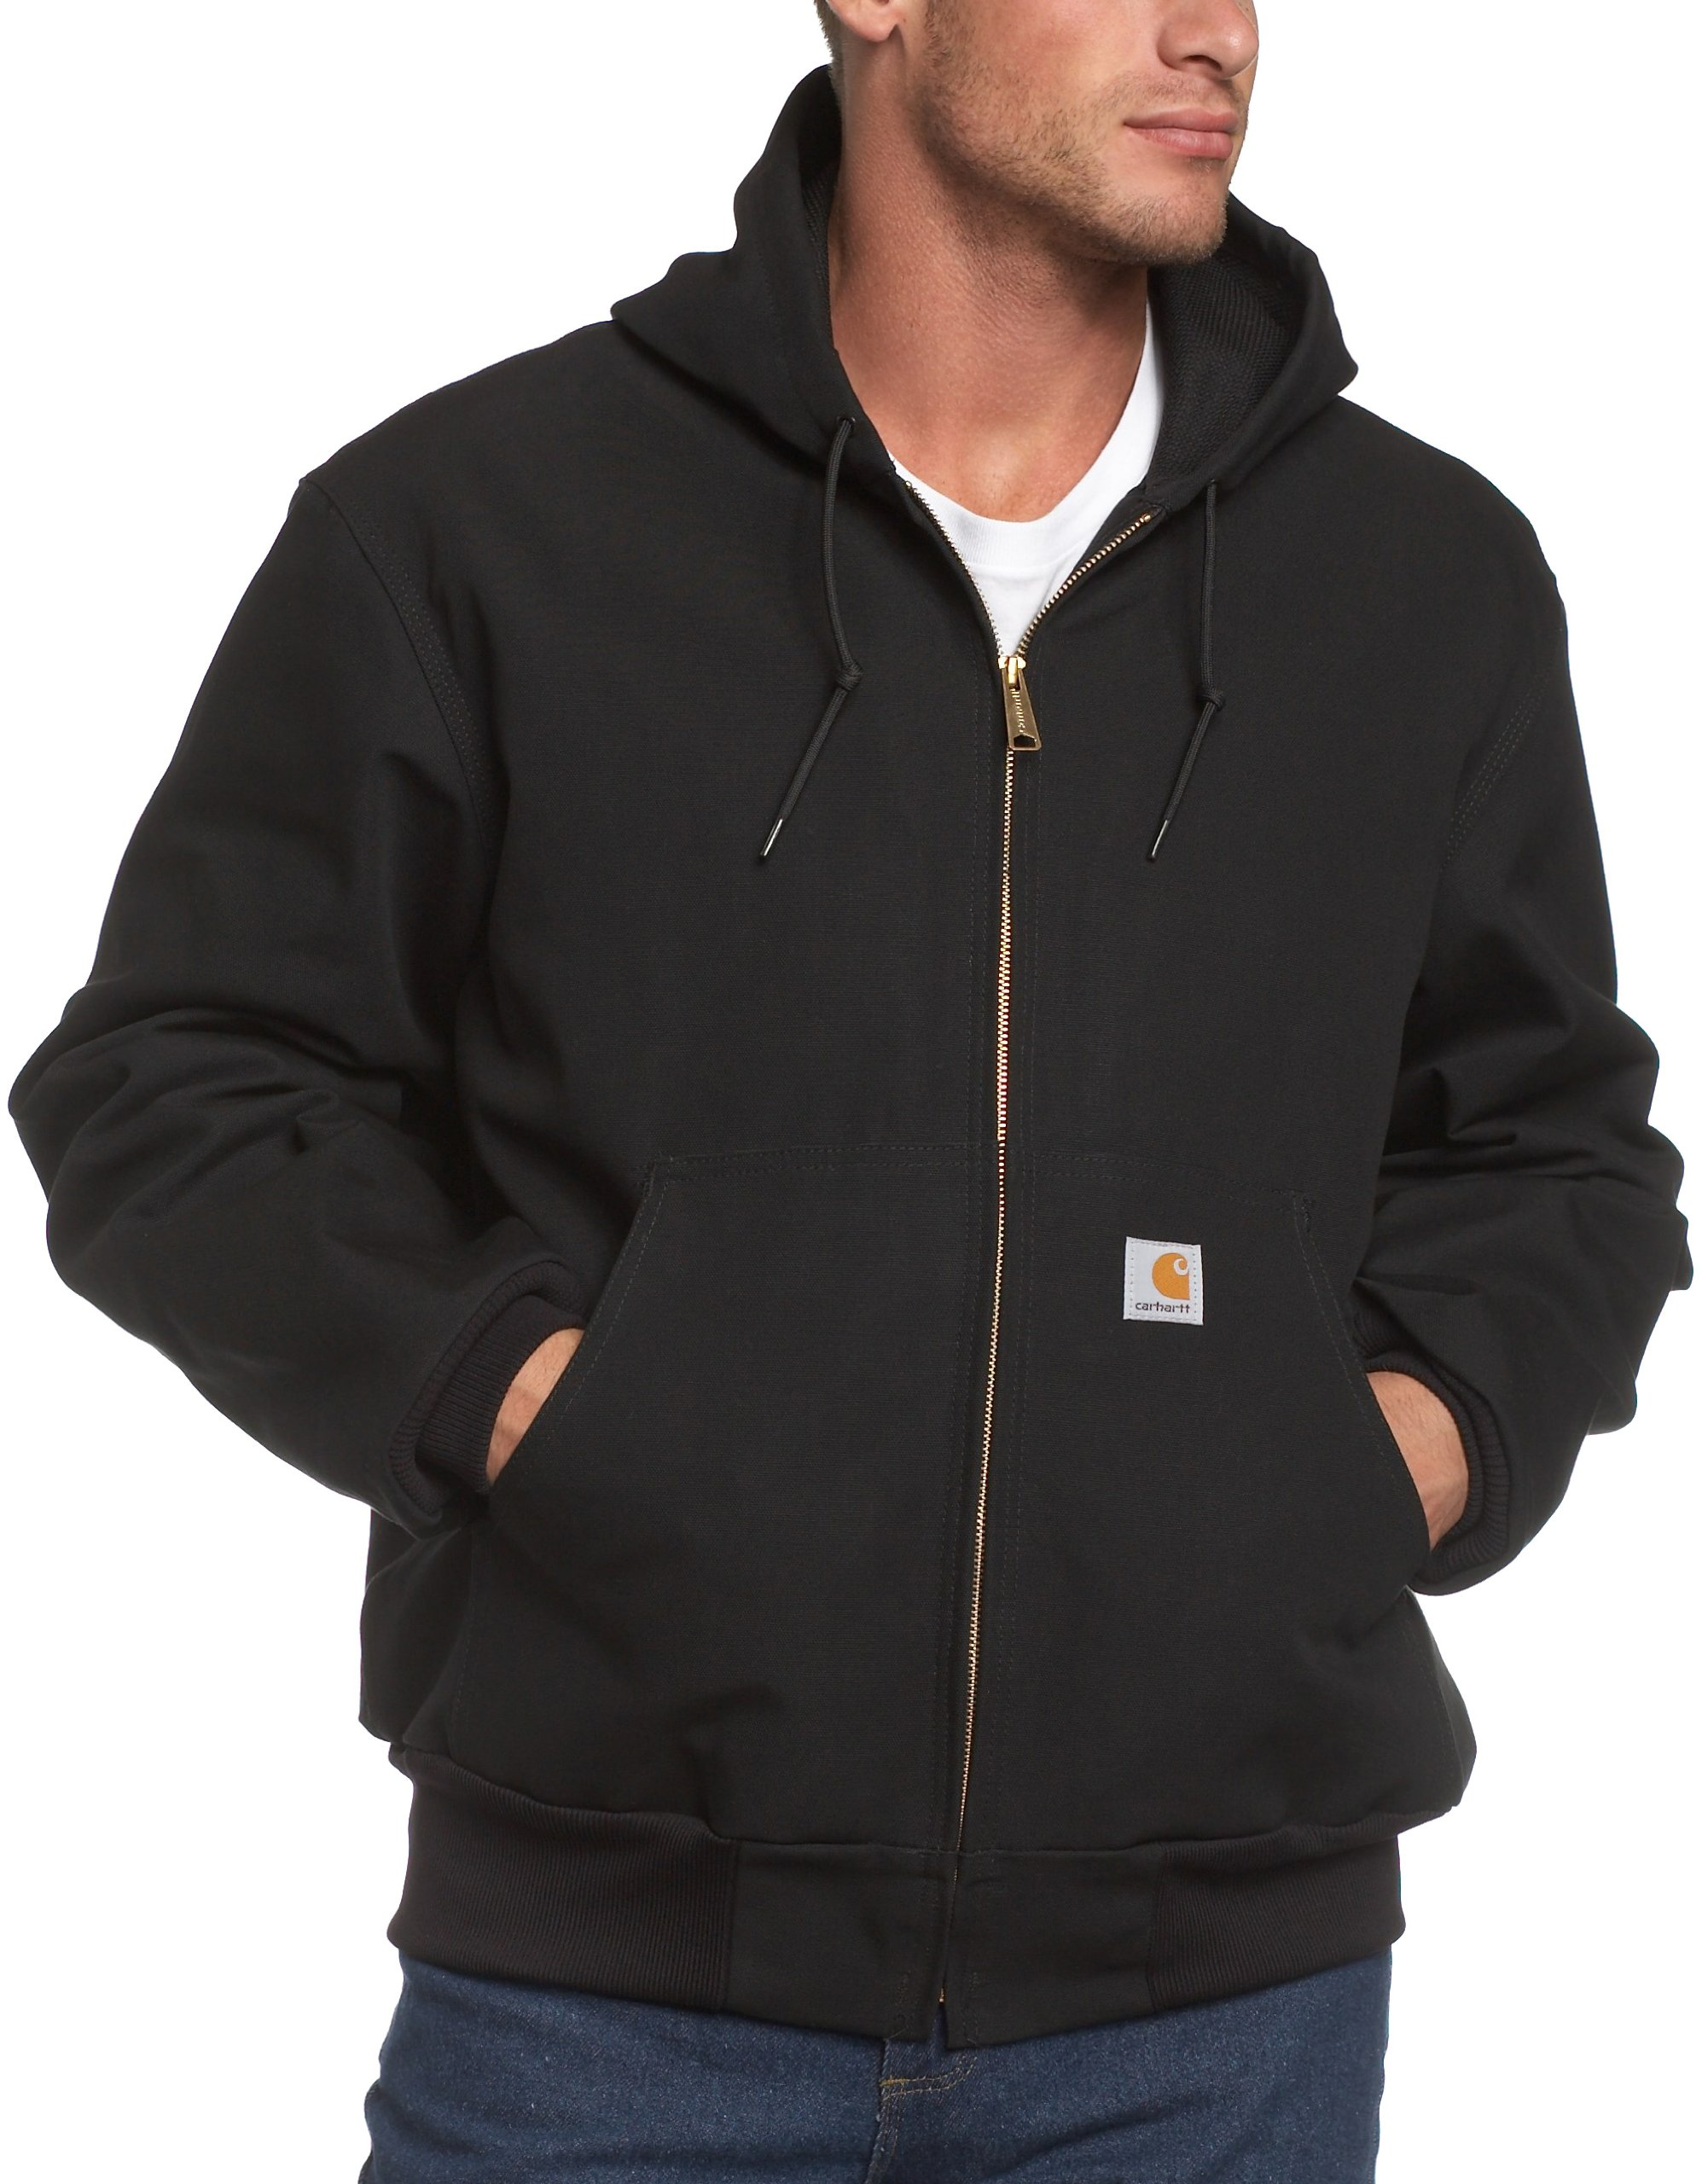 Carhartt Men's Big & Tall Thermal Lined Duck Active Jacket J131,Black,XX-Large Tall